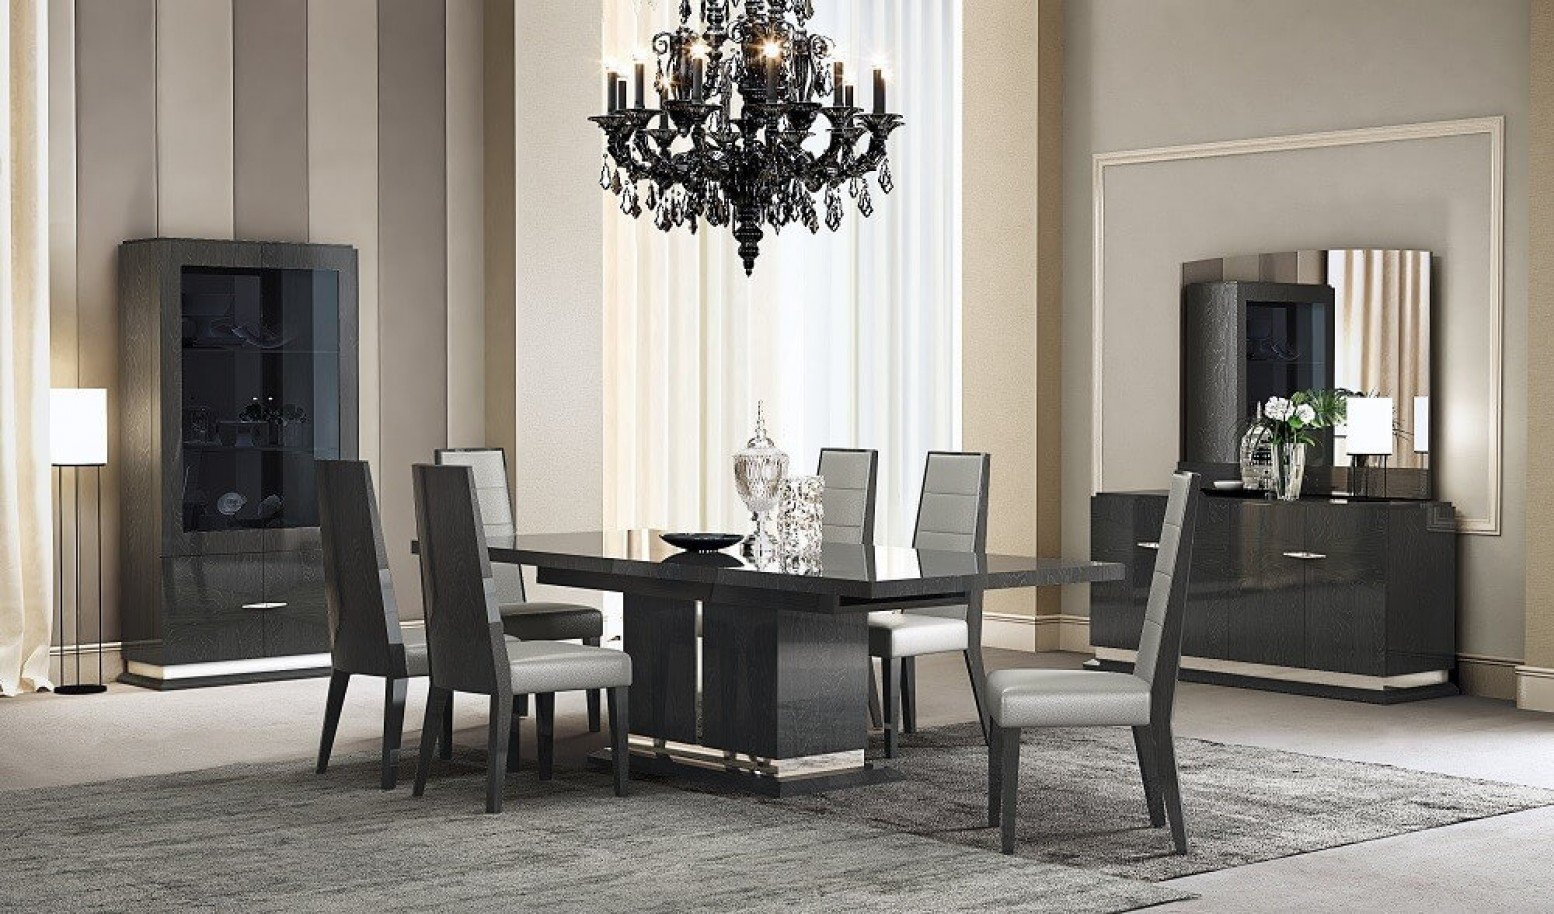 Valentina Modern Dining Room Set With, Dining Room Sets With Extendable Tables